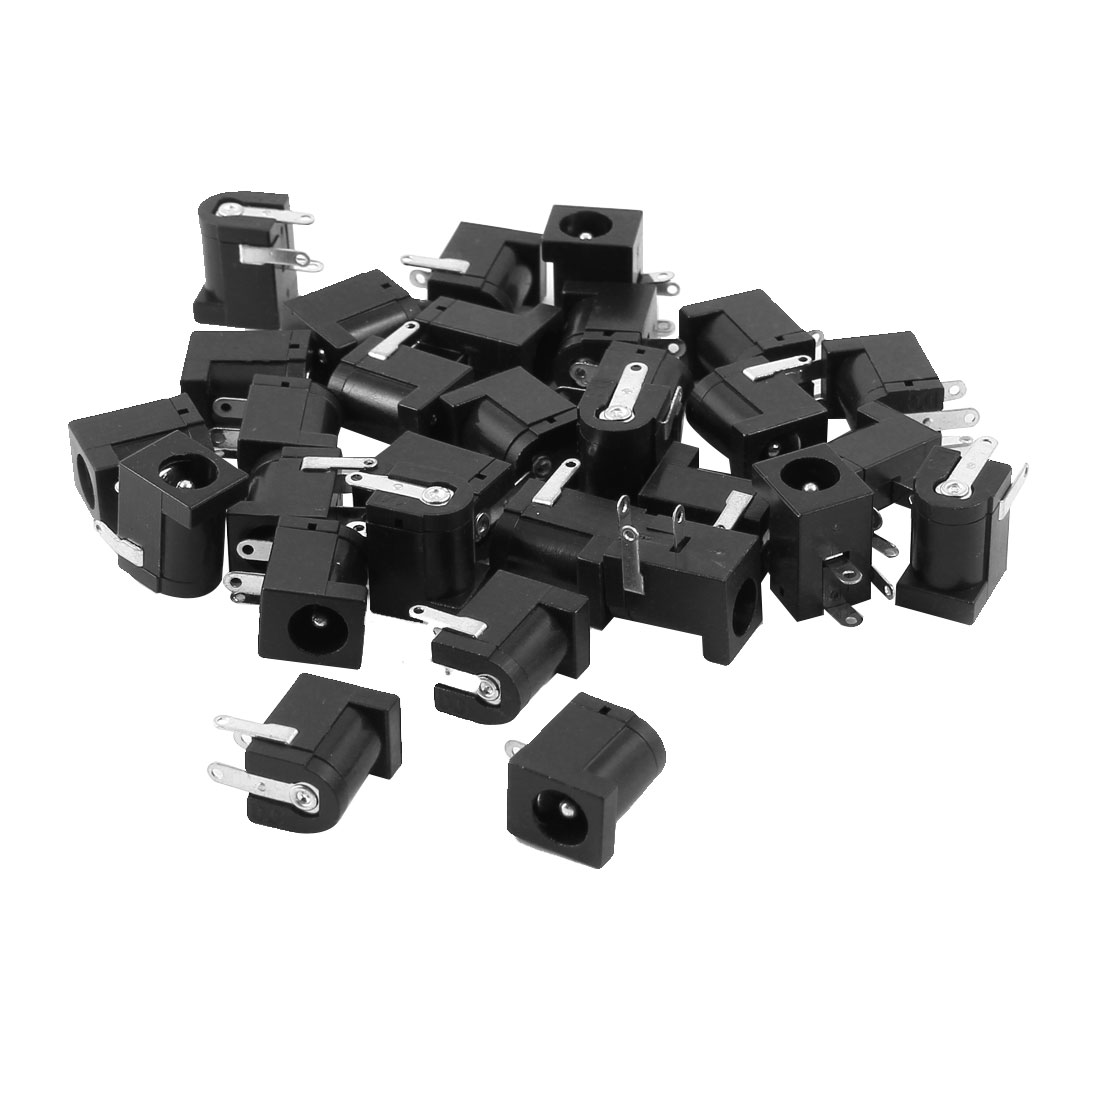 30 Pcs 3 Terminals 5.5mm x 2.1mm DC Power Jack Socket PCB Mount Charging Connector Port